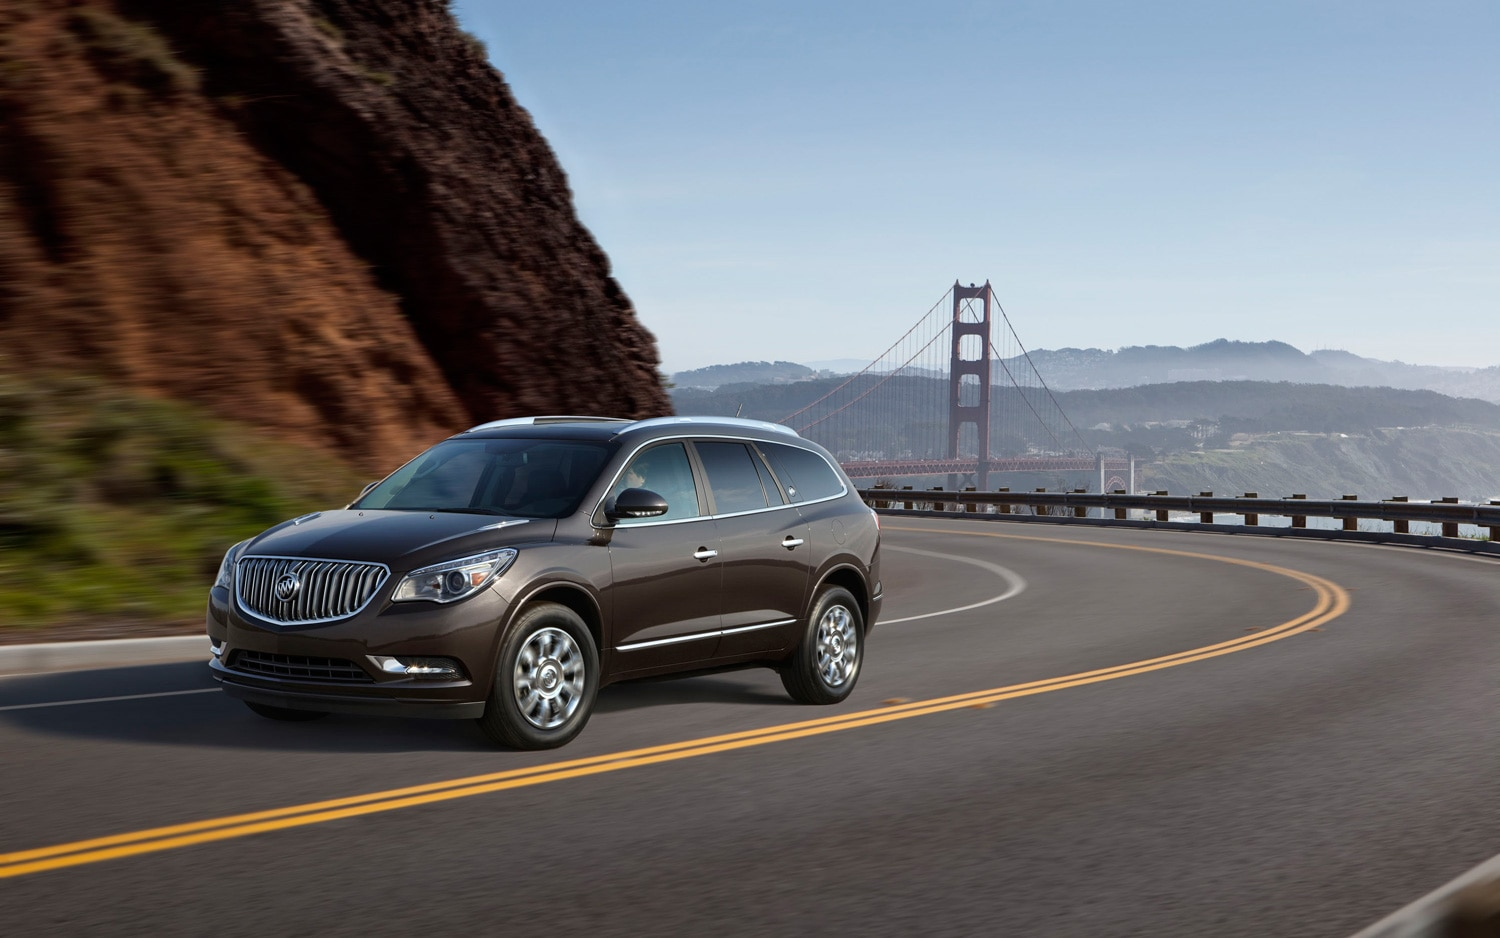 2013 Buick Enclave Front Three Quarter In Motion